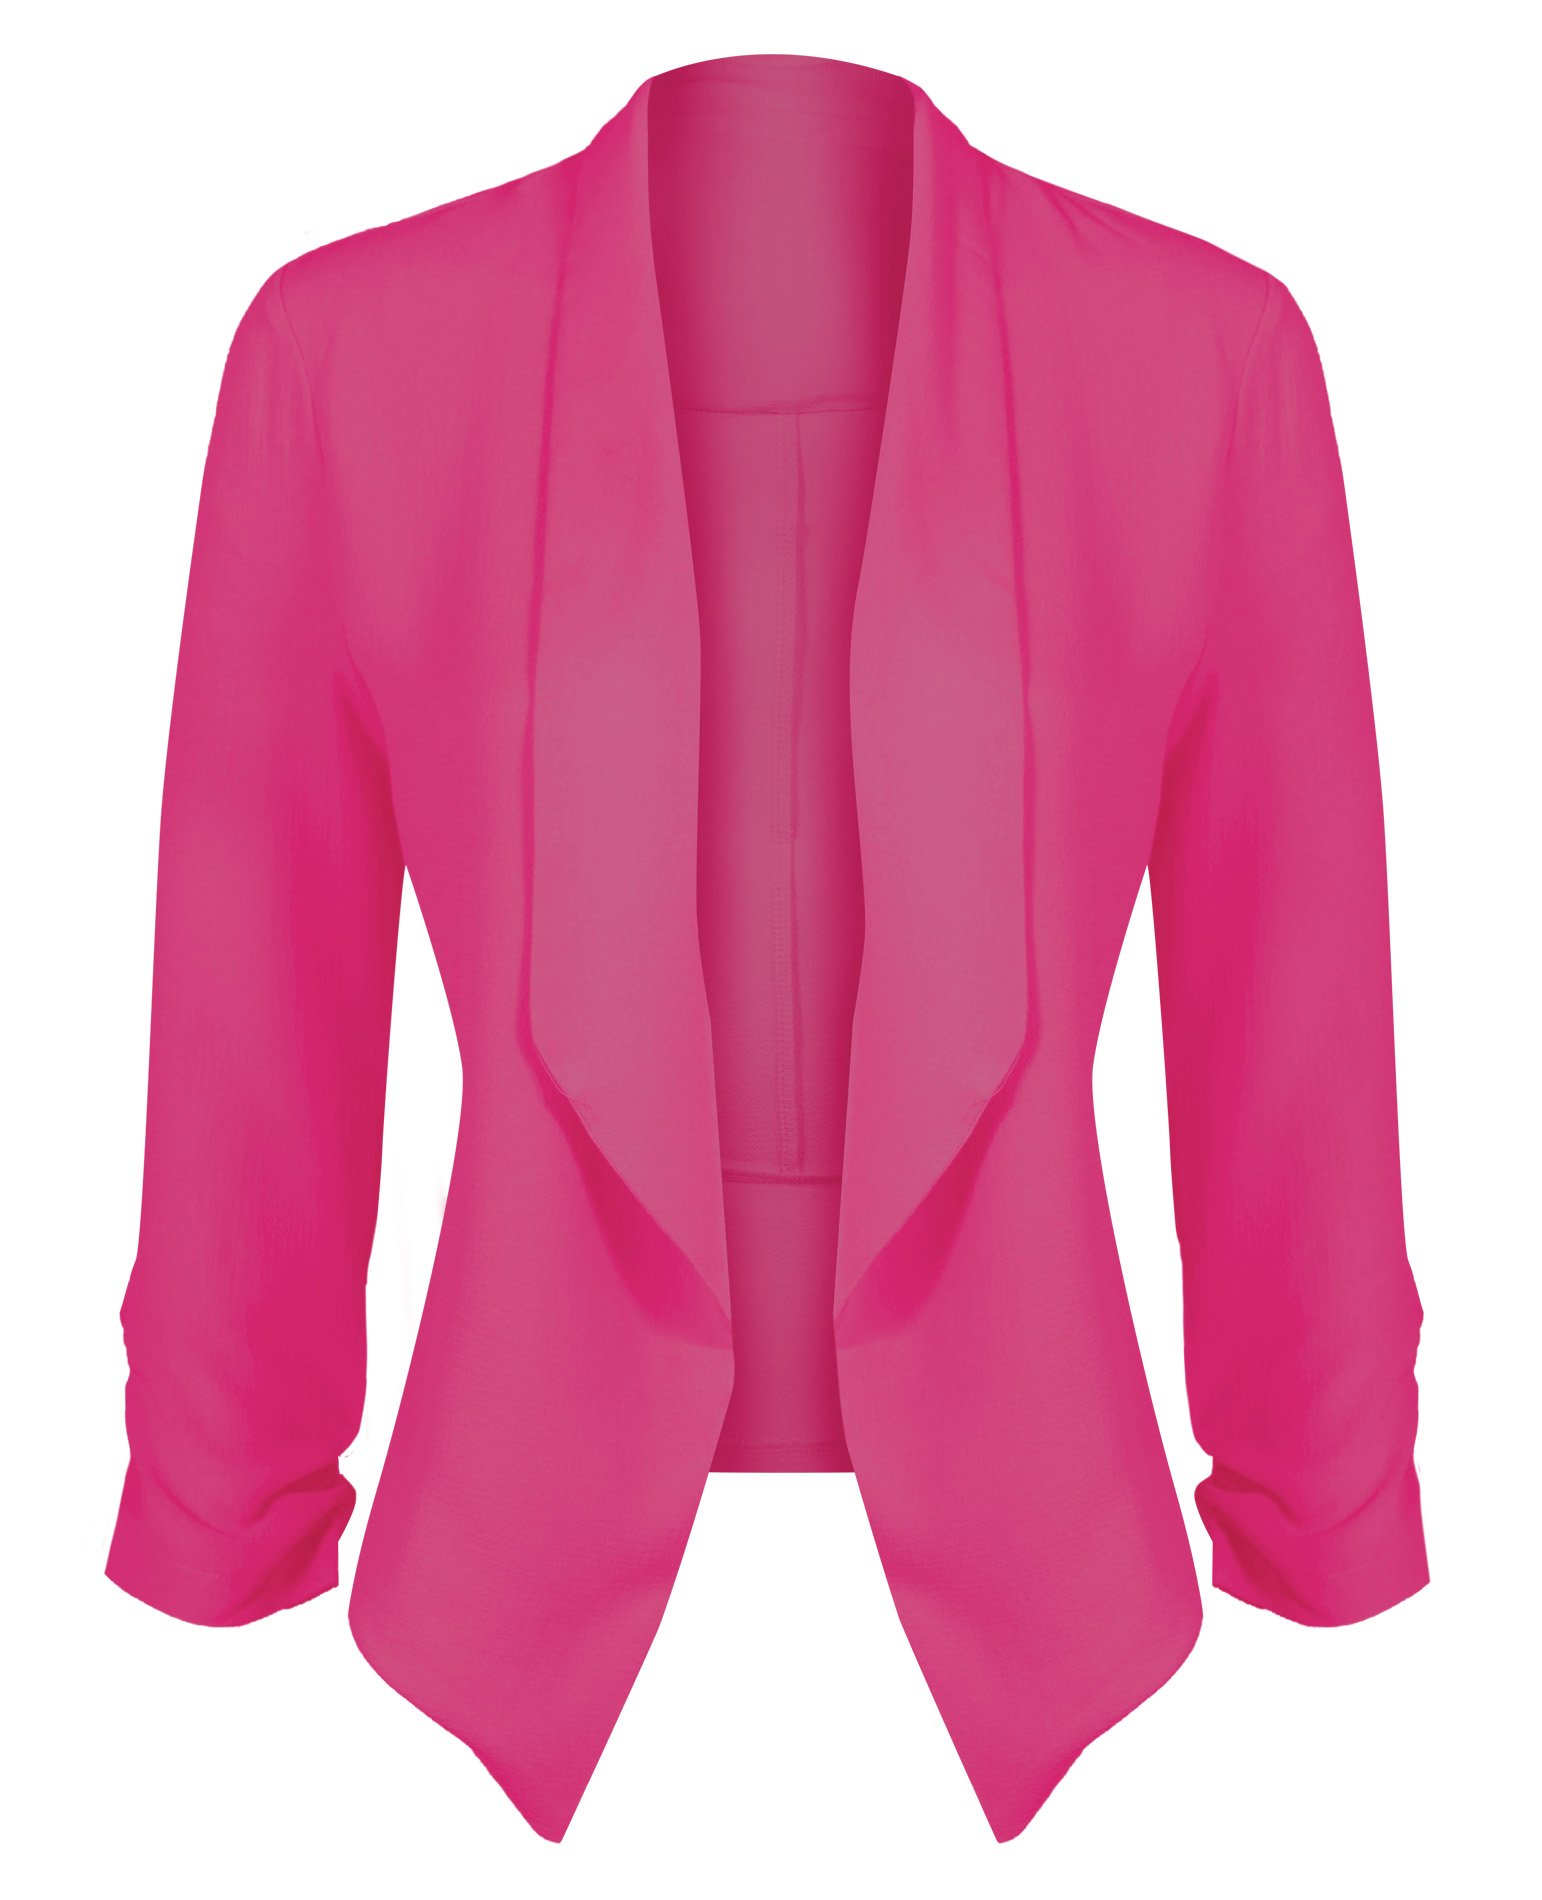 HOT FROM HOLLYWOOD Women's Classic Stretchy Cardigan Blazer with Curved Hemline and Shirring 3/4 Sleeves